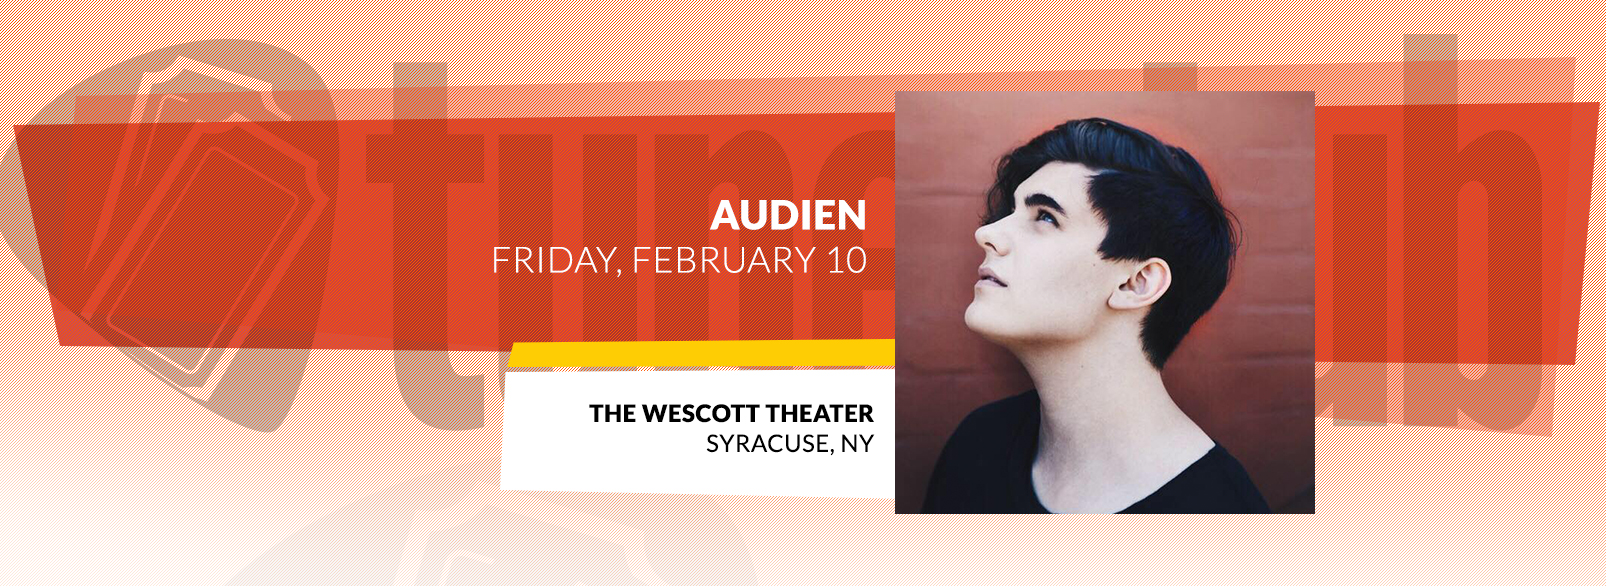 Audien @ The Westcott Theater